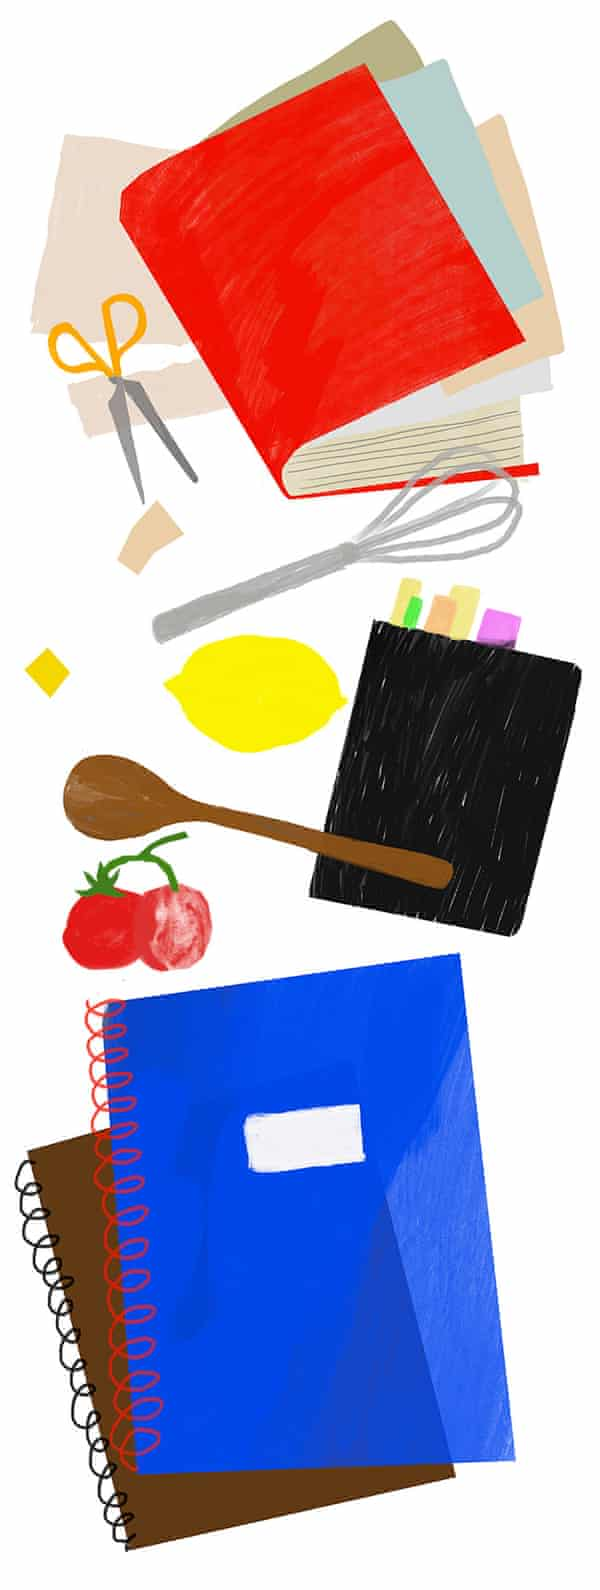 An illustration of a closed notebook with bits of paper falling out of it, two ring binders, a wooden spoon, a whisk, scissors, a lemon and tomatoes